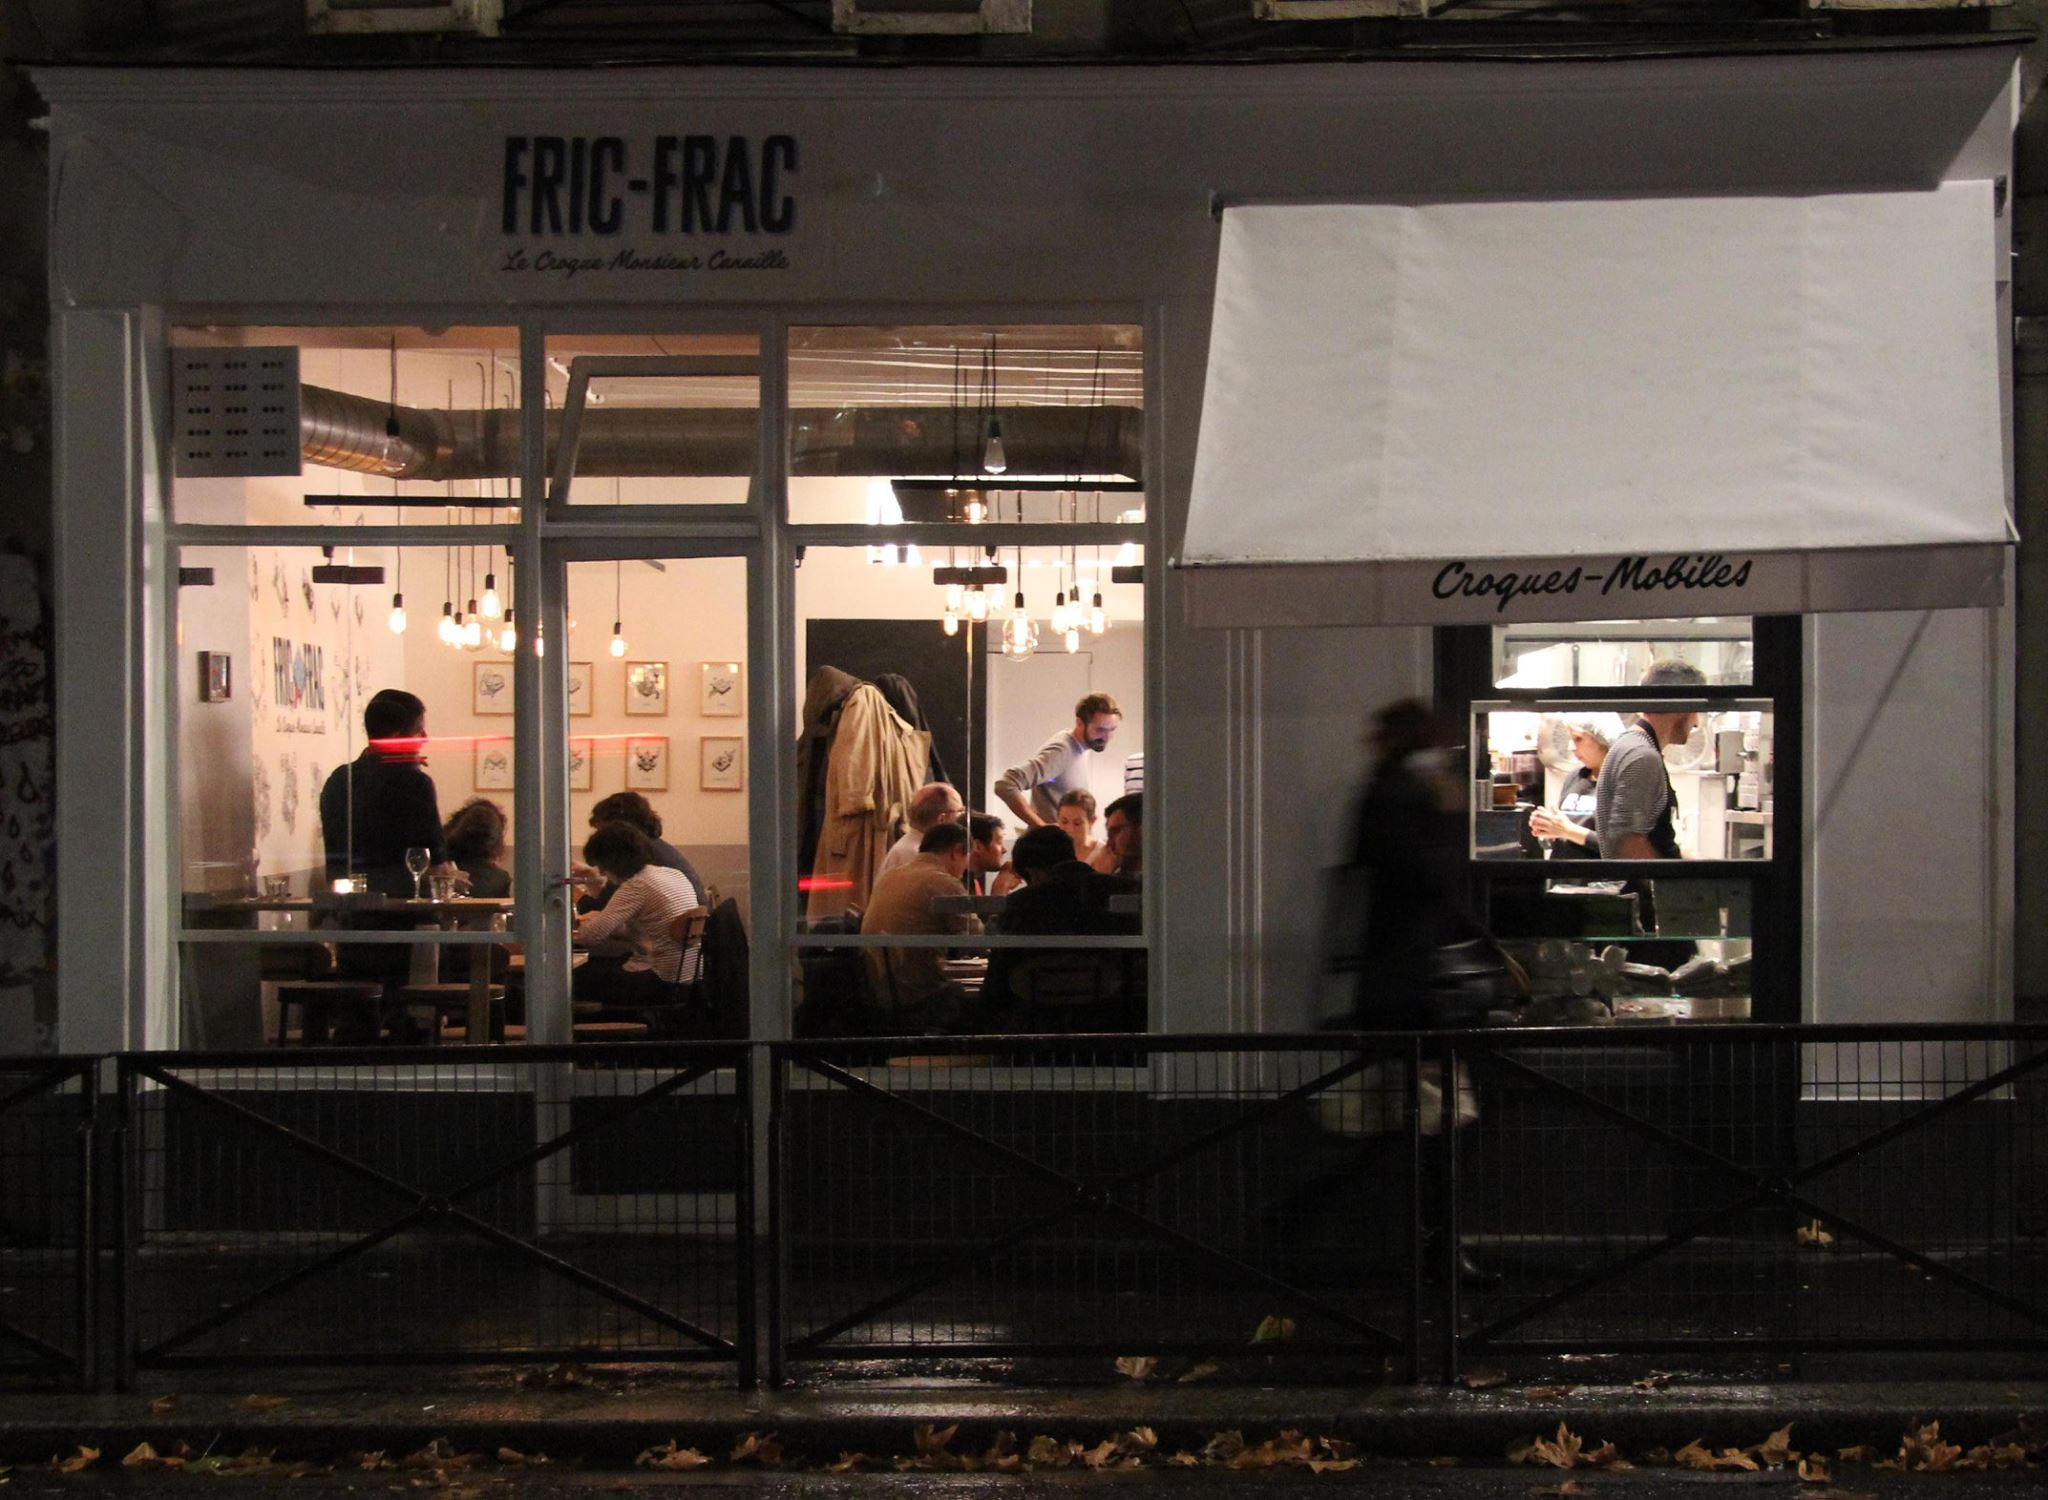 fric-frac paris